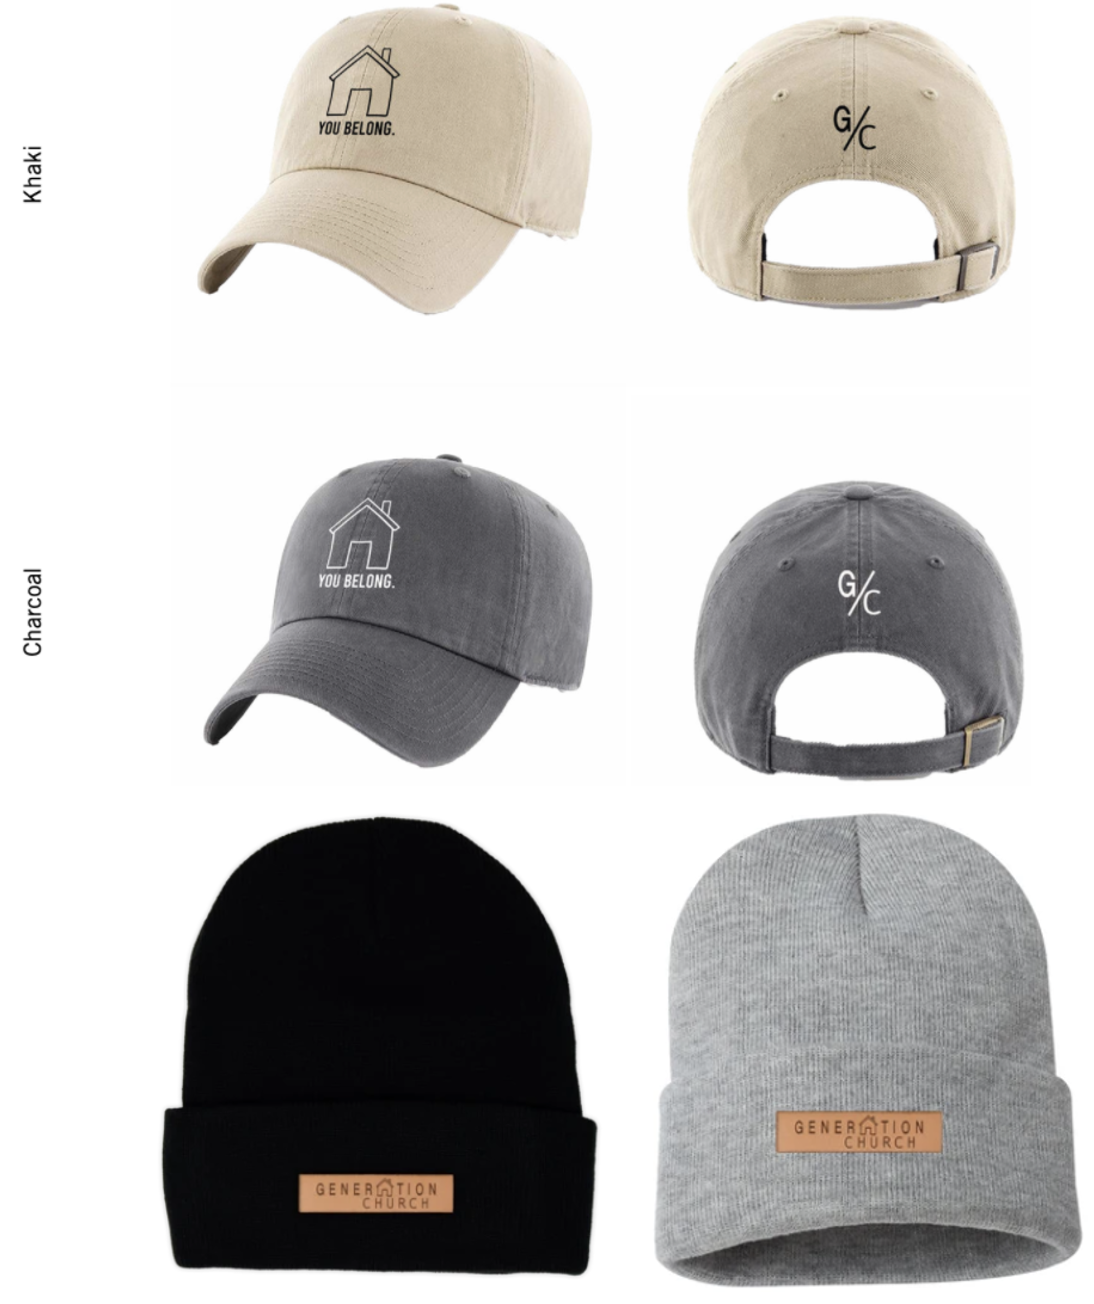 Let's get started! Feel free to scroll through our Merch and <strong>only</strong> fill in the items you'd like<br><br>Here's ourYou Belong caps